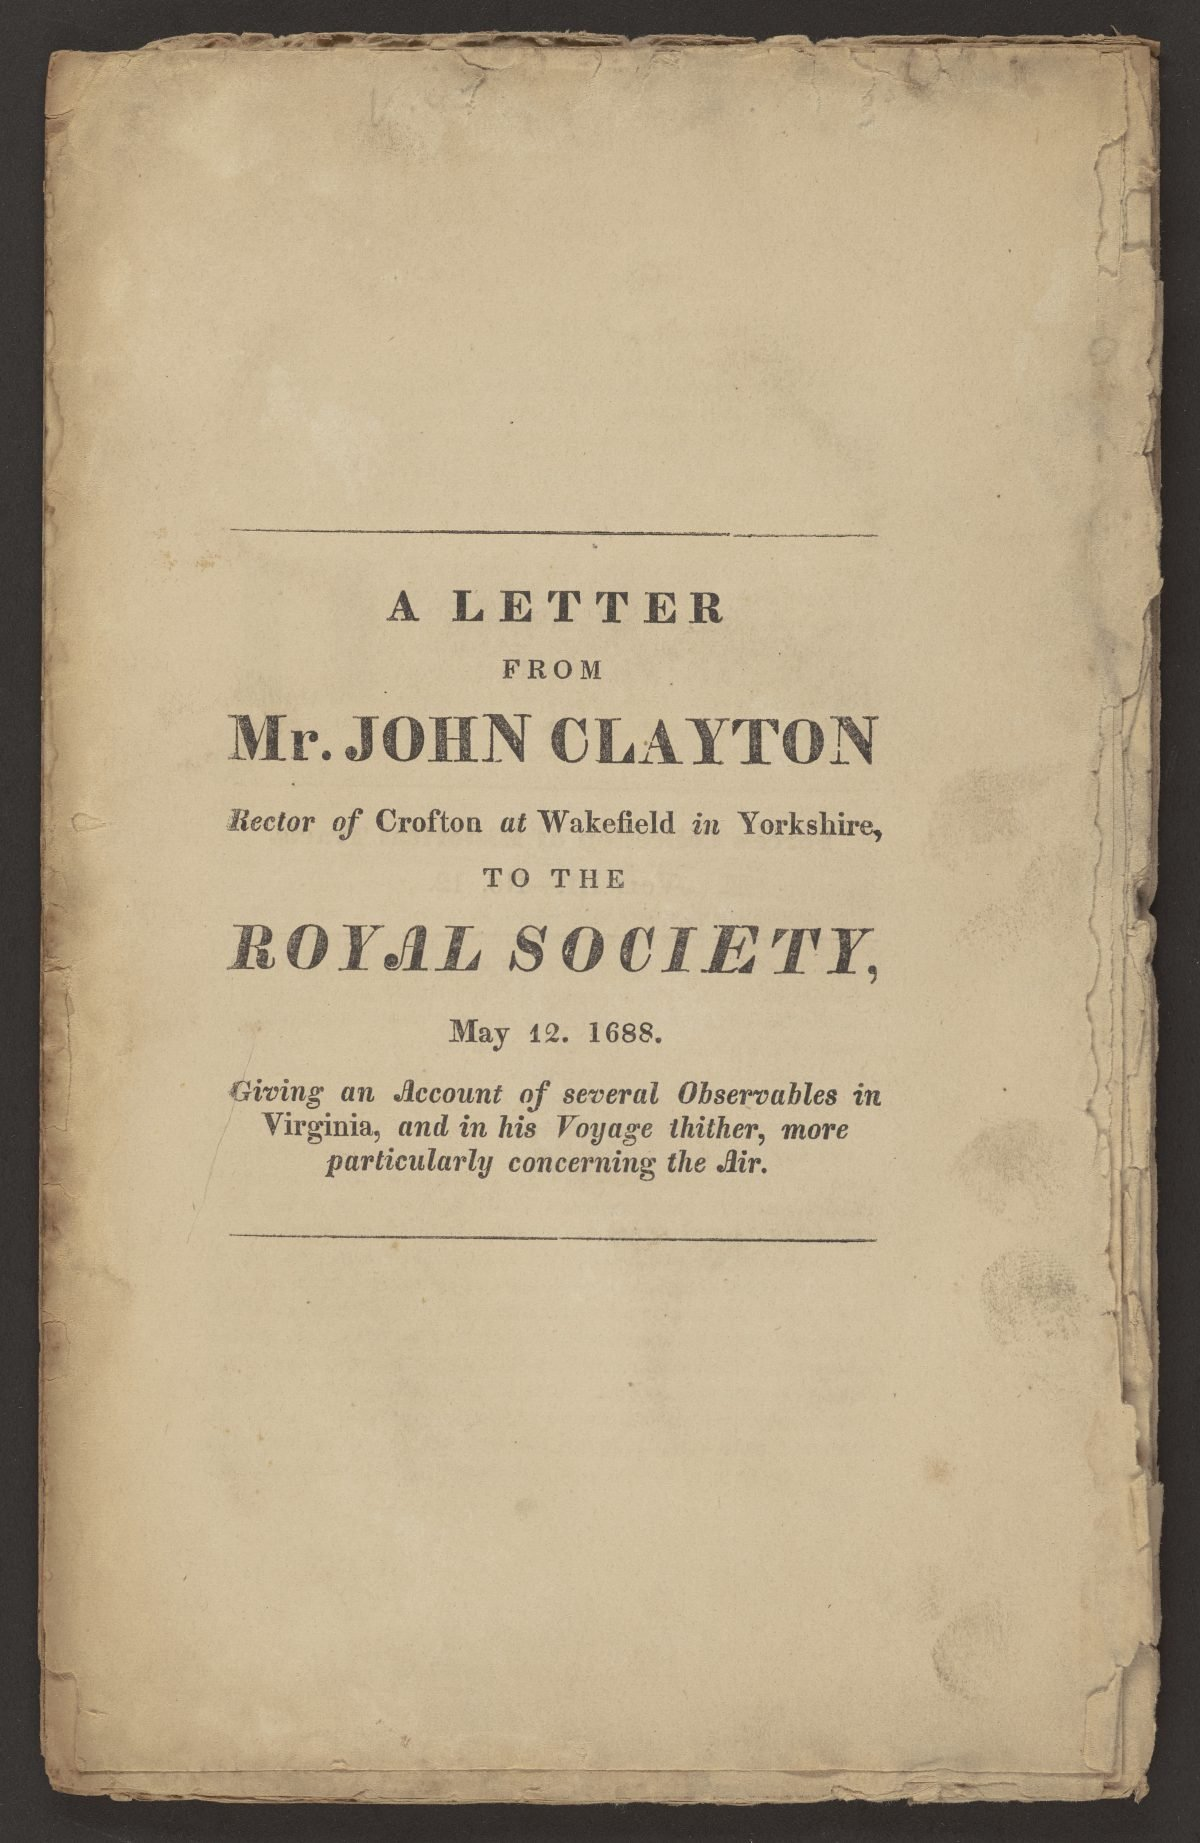 A Letter from Mr. John Clayton Rector of Crofton at Wakefield in Yorkshire